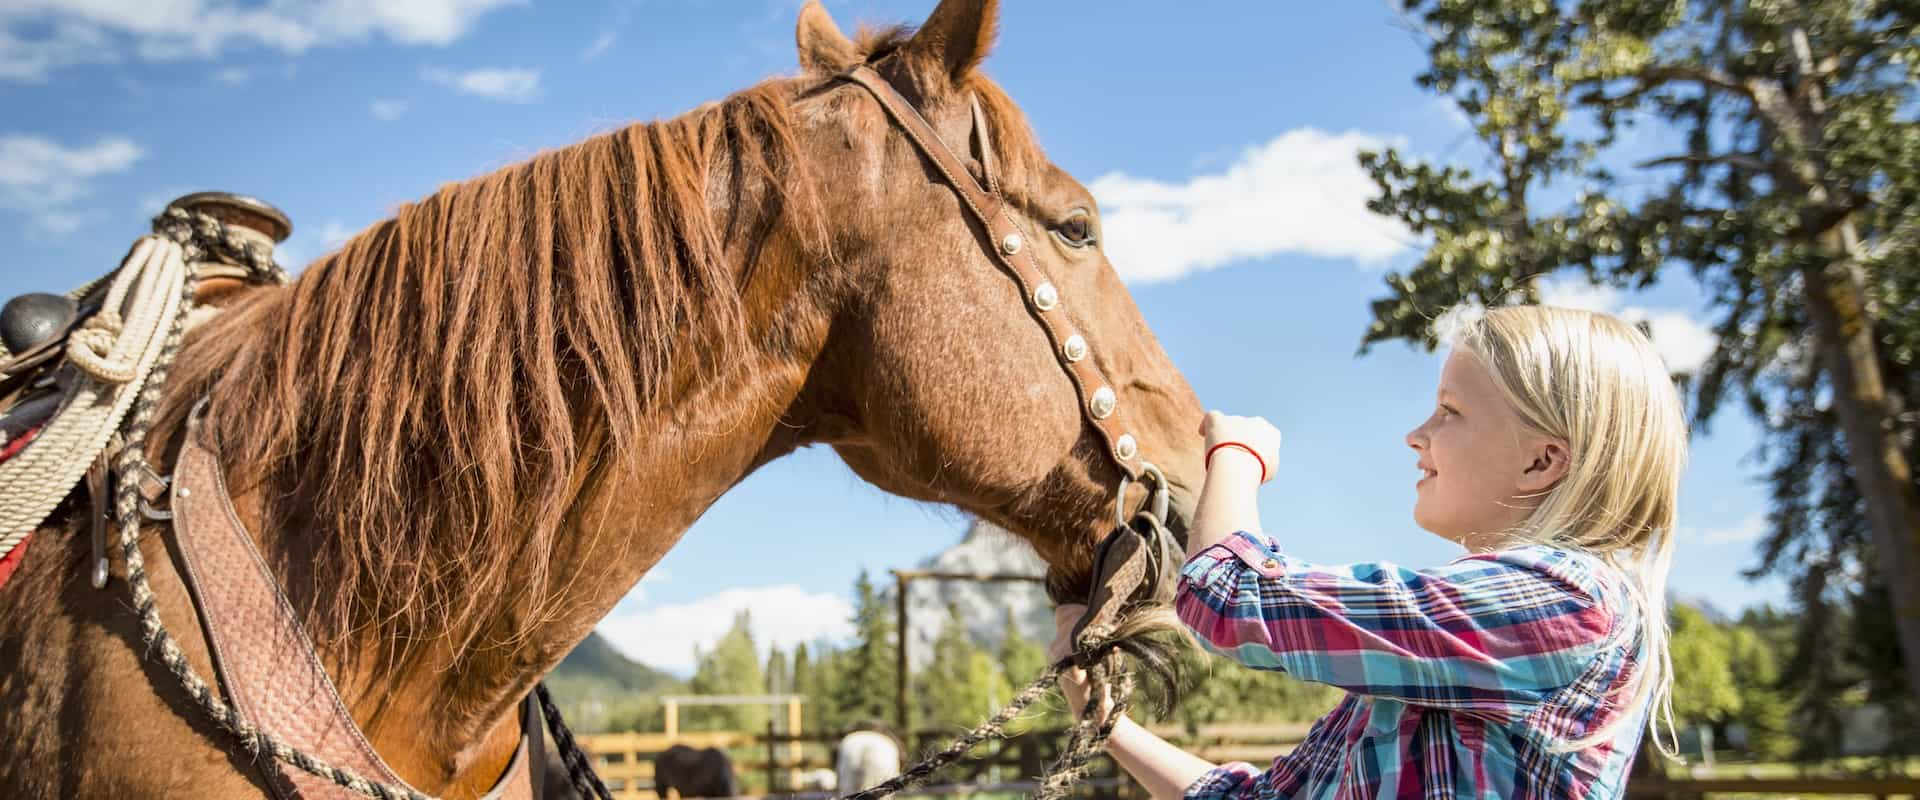 Children and families love meeting the horses on a carriage ride or wagon ride